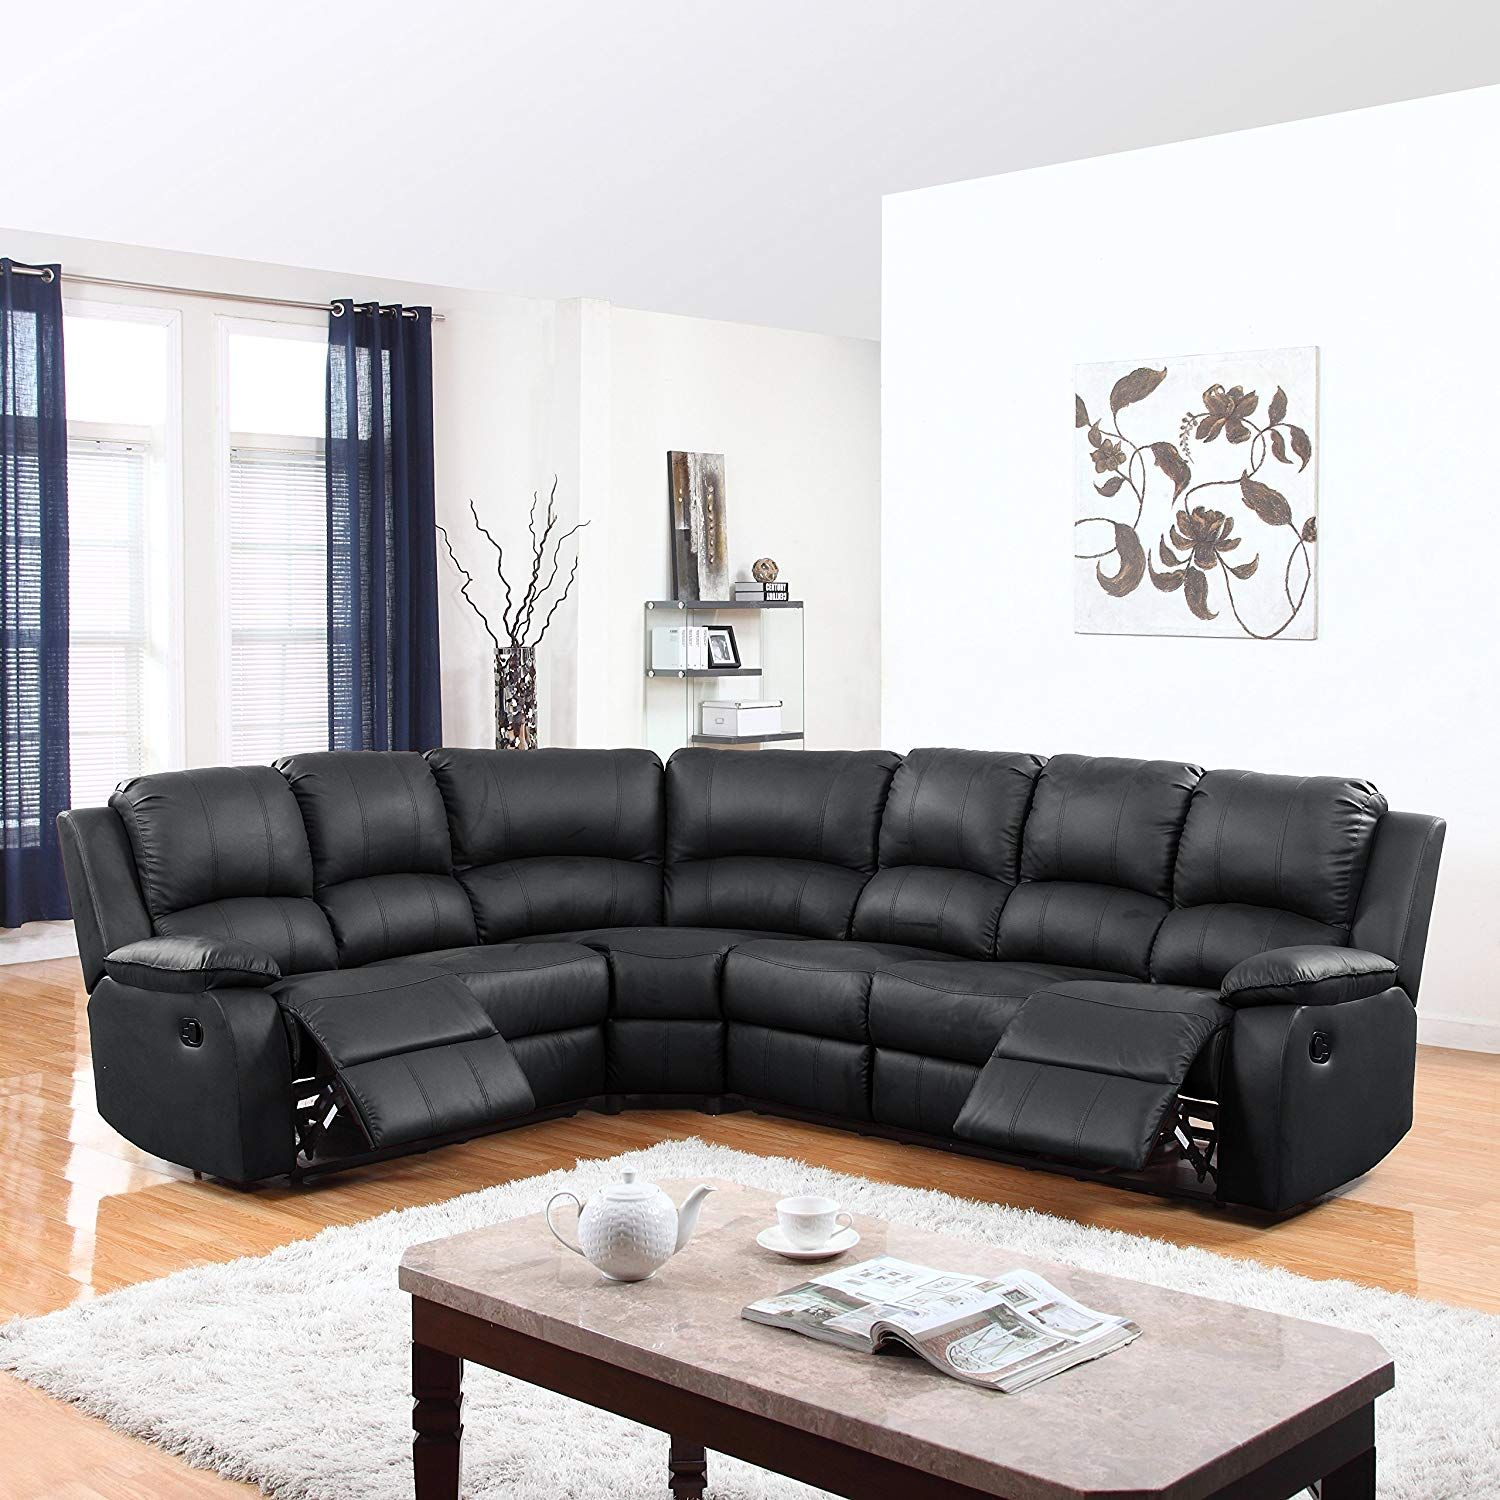 Divano Roma Furniture Large Clic And Traditional Bonded Leather Reclining Corner Sectional Sofa Black